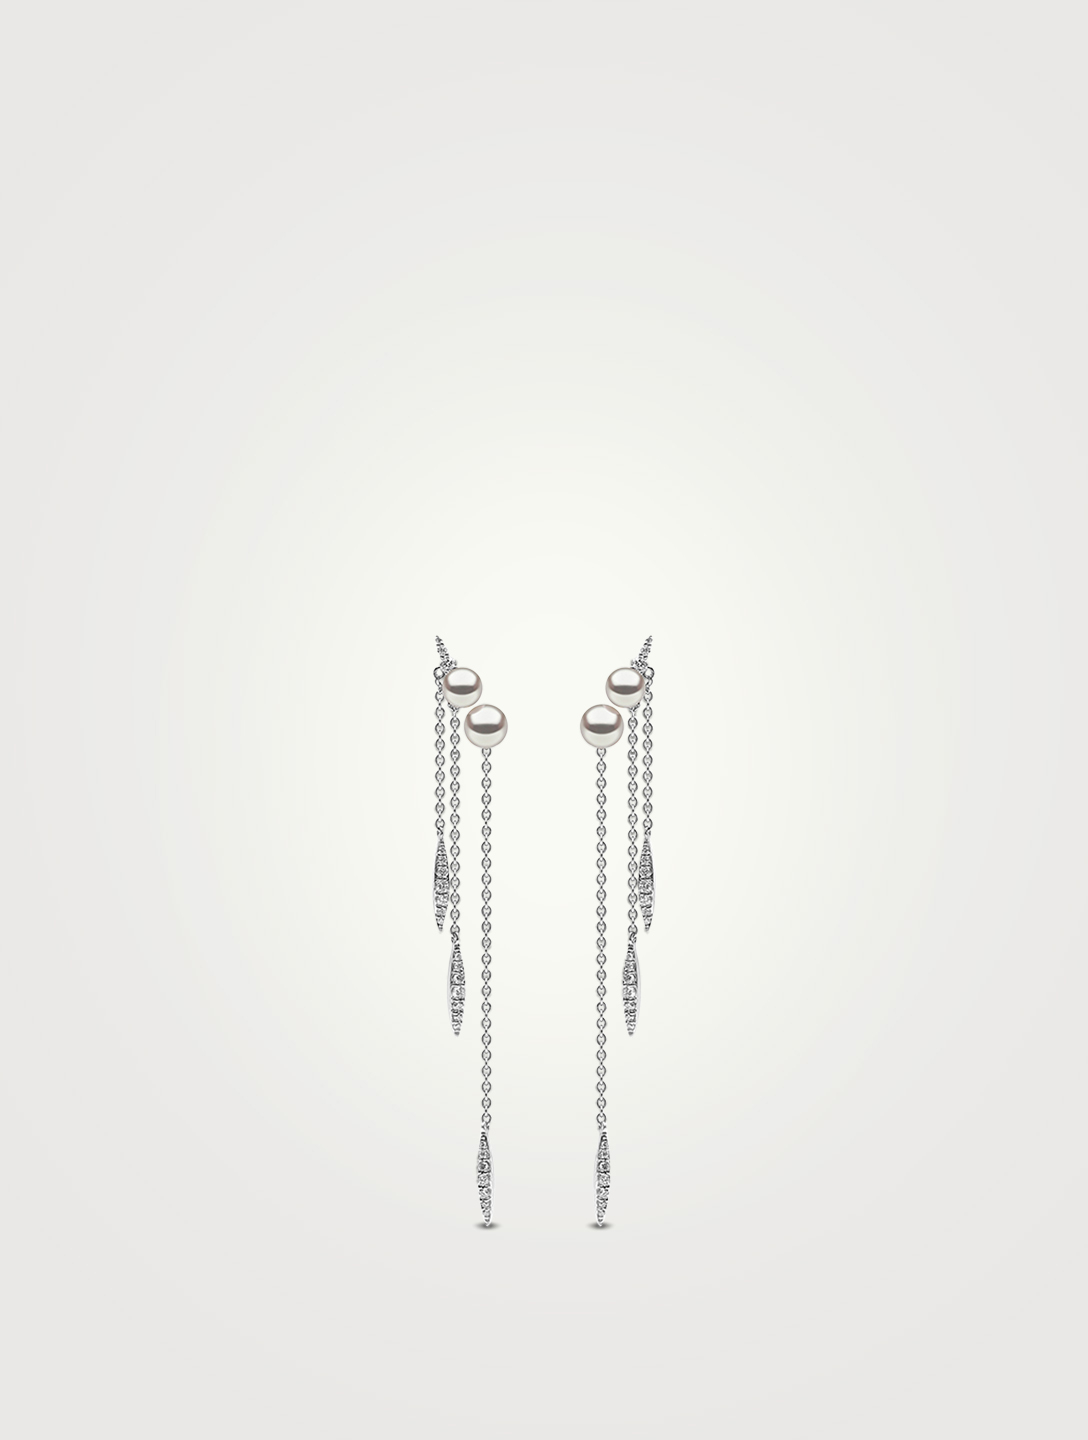 YOKO LONDON 18K White Gold Triple Chain Earrings With Pearls and Diamonds Womens White